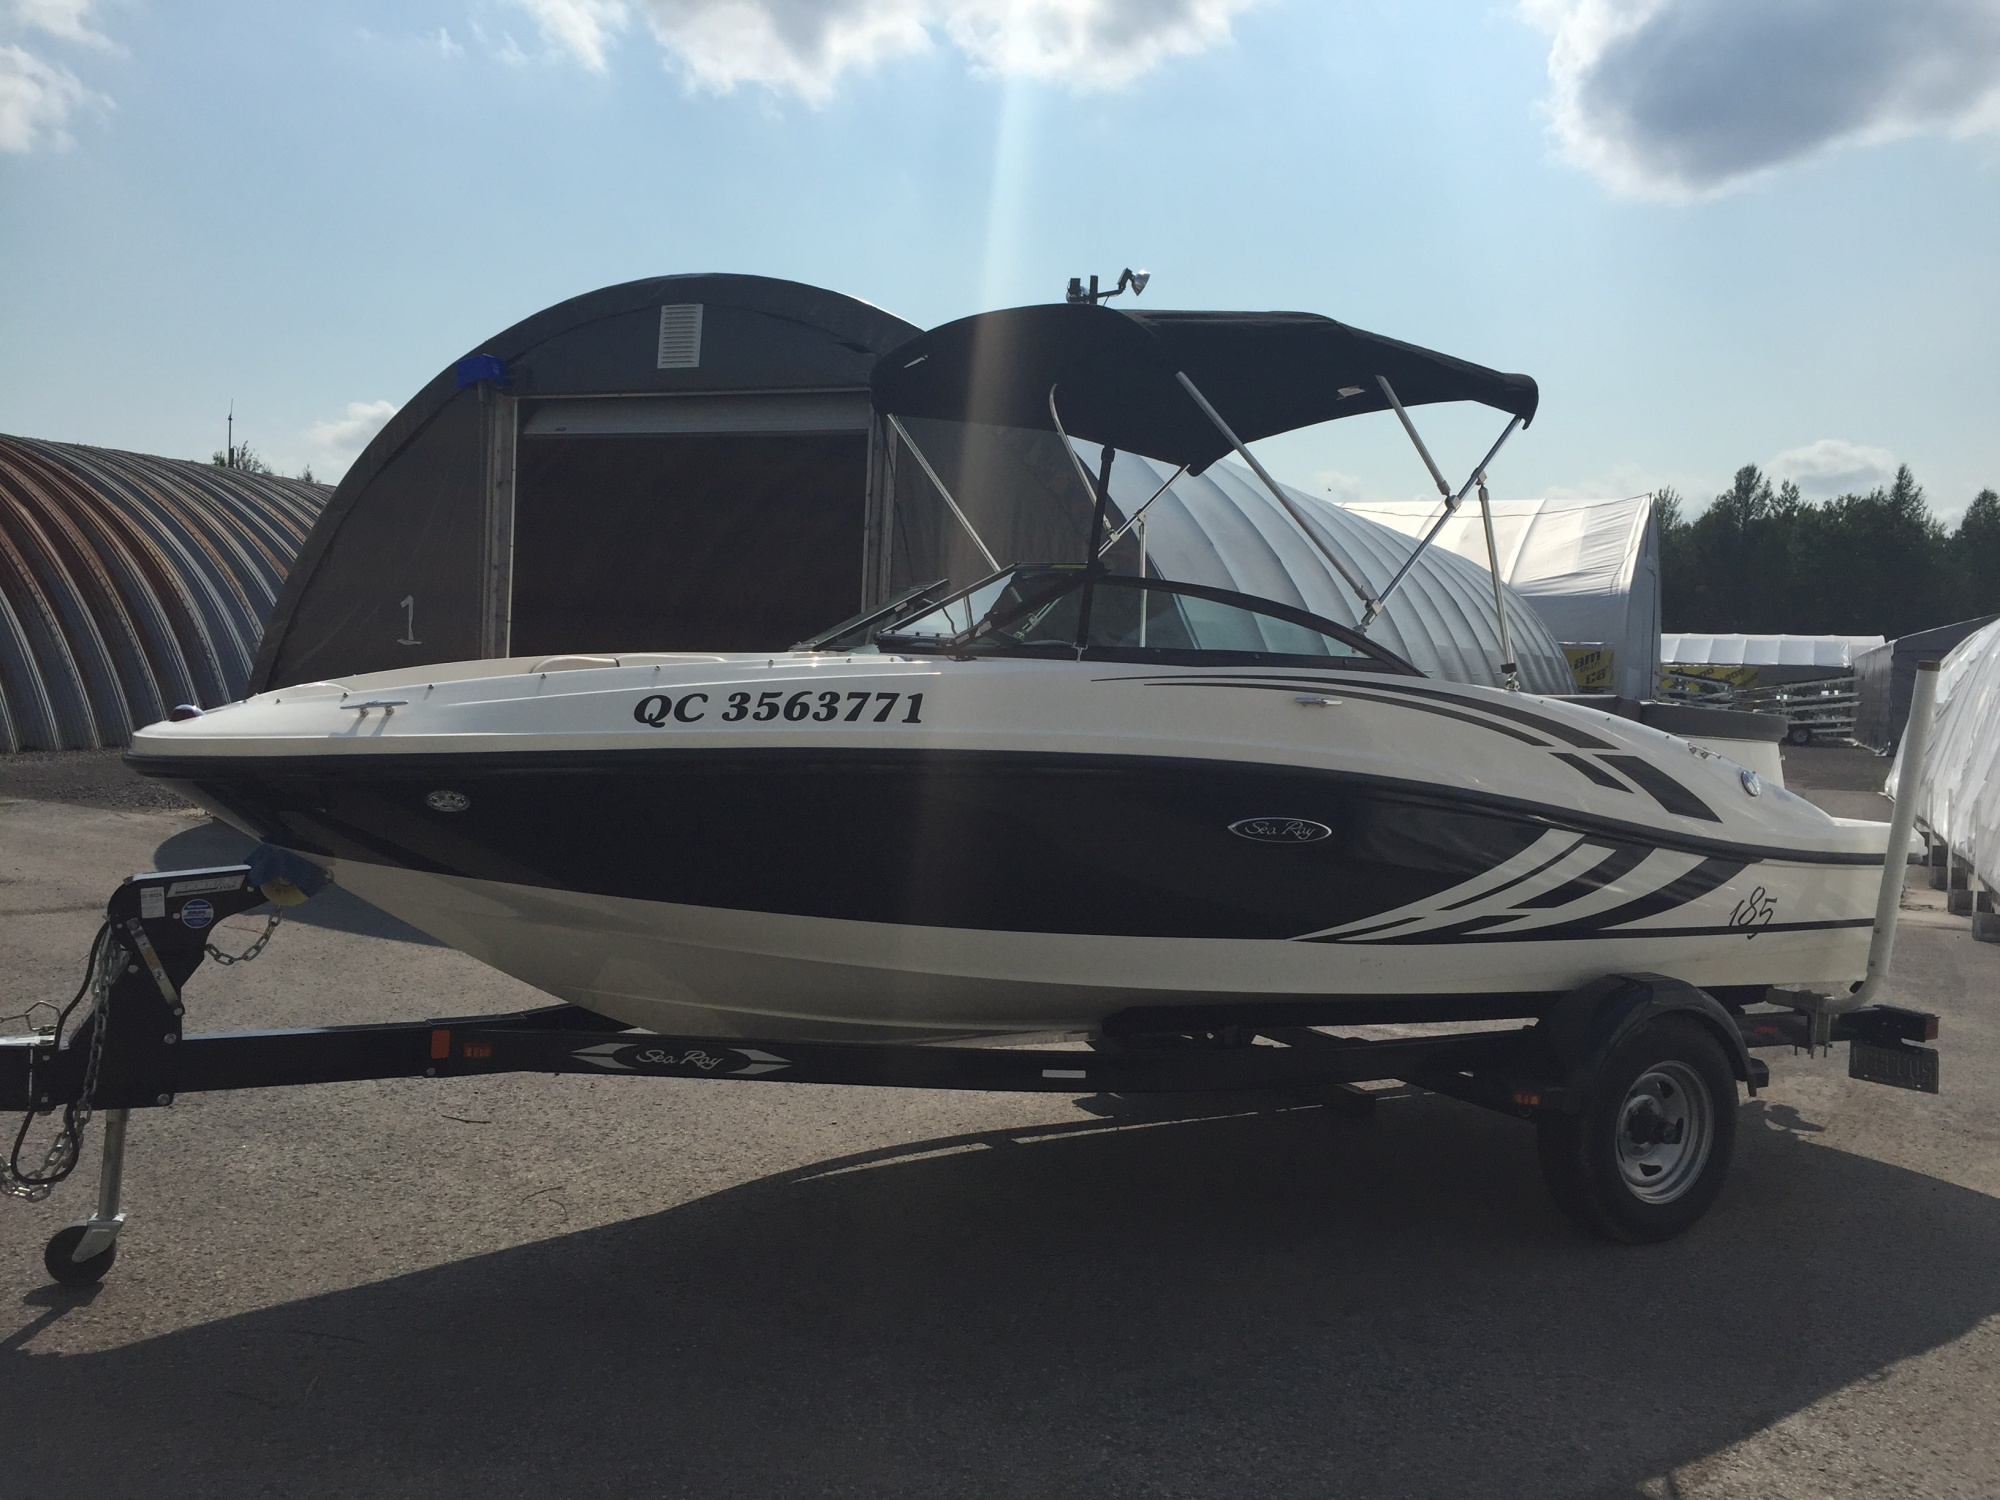 Sea Ray 185 SP SRV34 - STOCK 26147-A Bateau Sea ray 2012 Blanc (3)